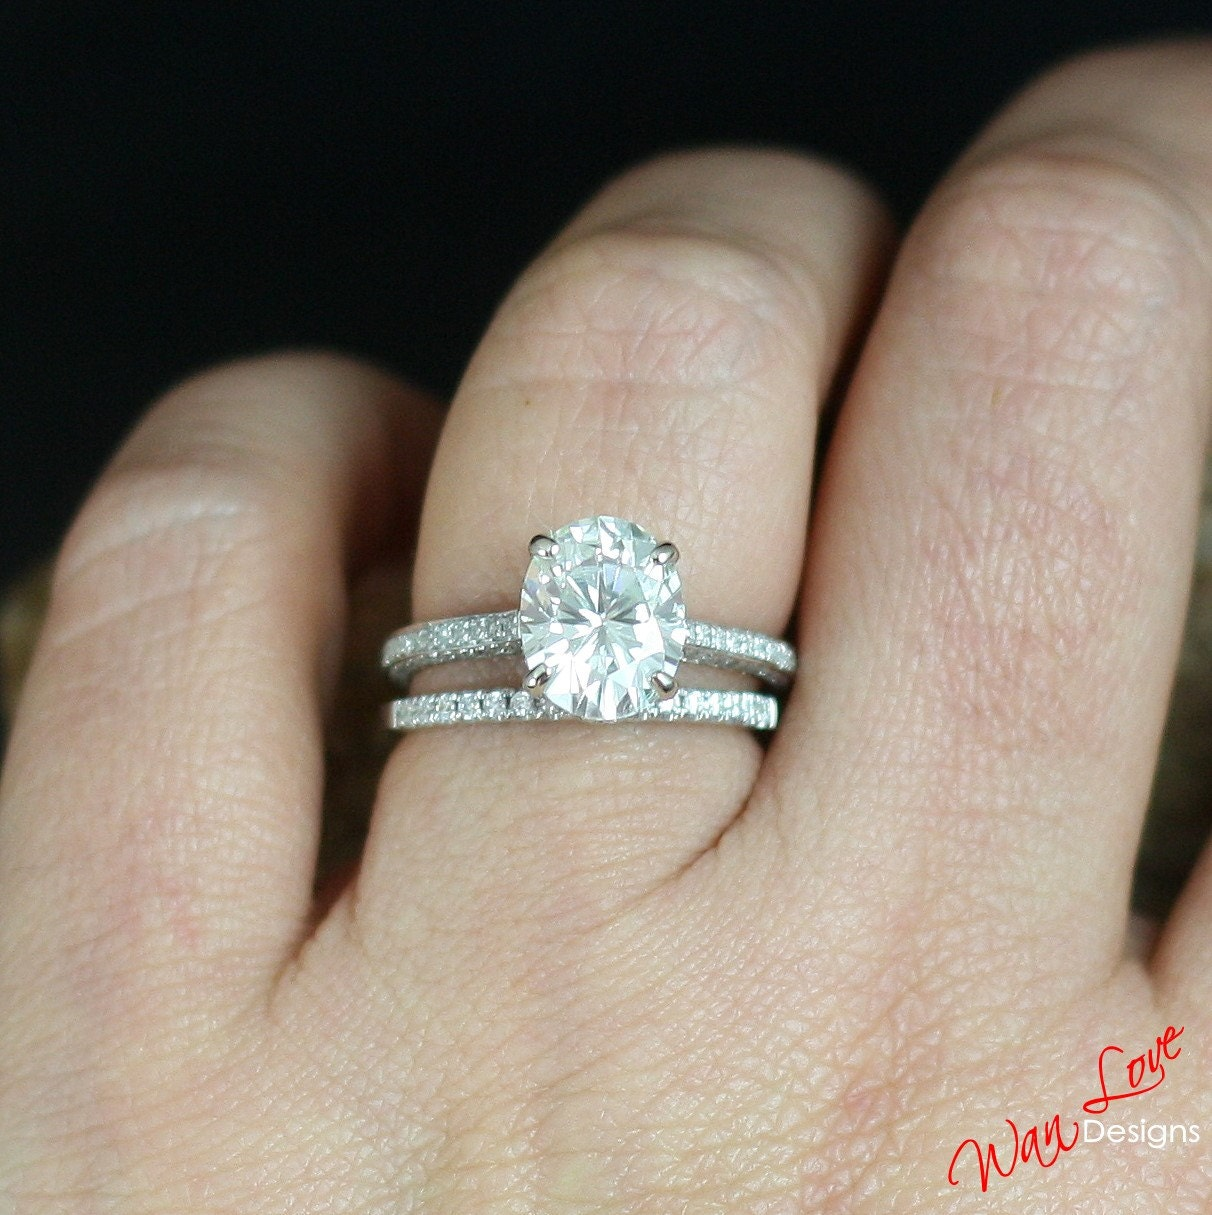 natural accessories anniversary gold bands excellent band design engagement rings item eternity wedding jewelry brand top white carat ring original from in moissanite